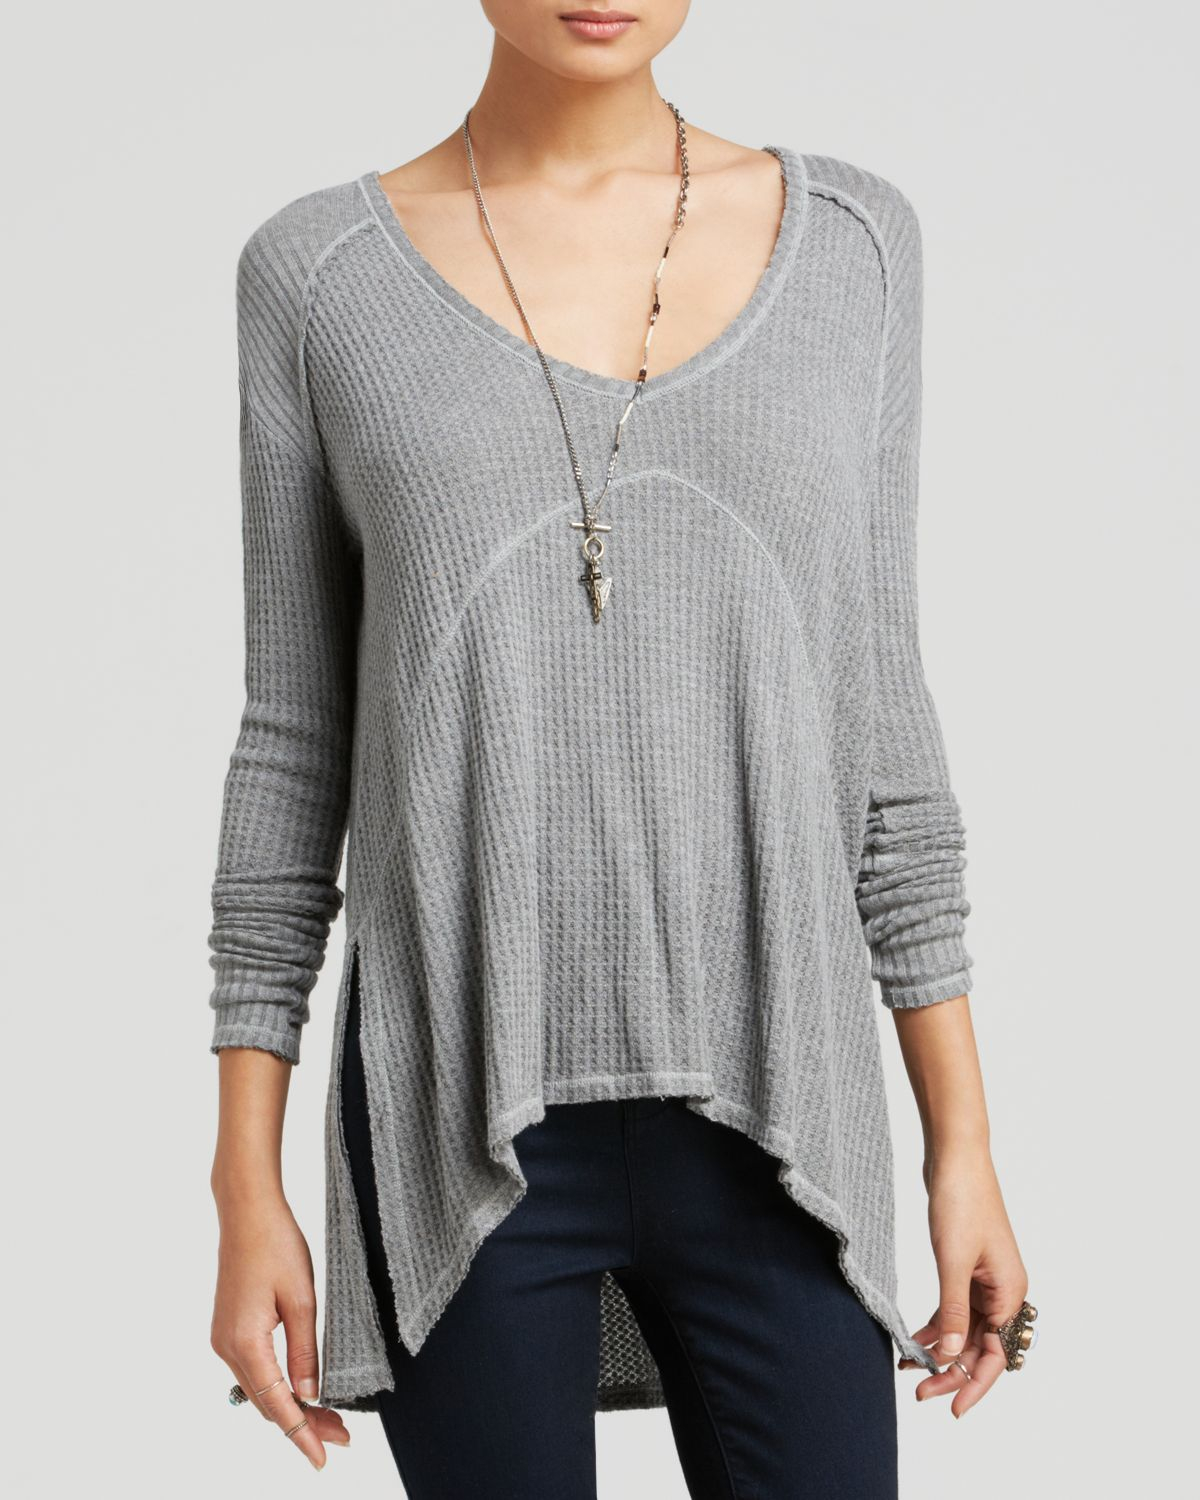 51644c48170 Free People Top - Drippy Thermal Sunset Park in Gray - Lyst